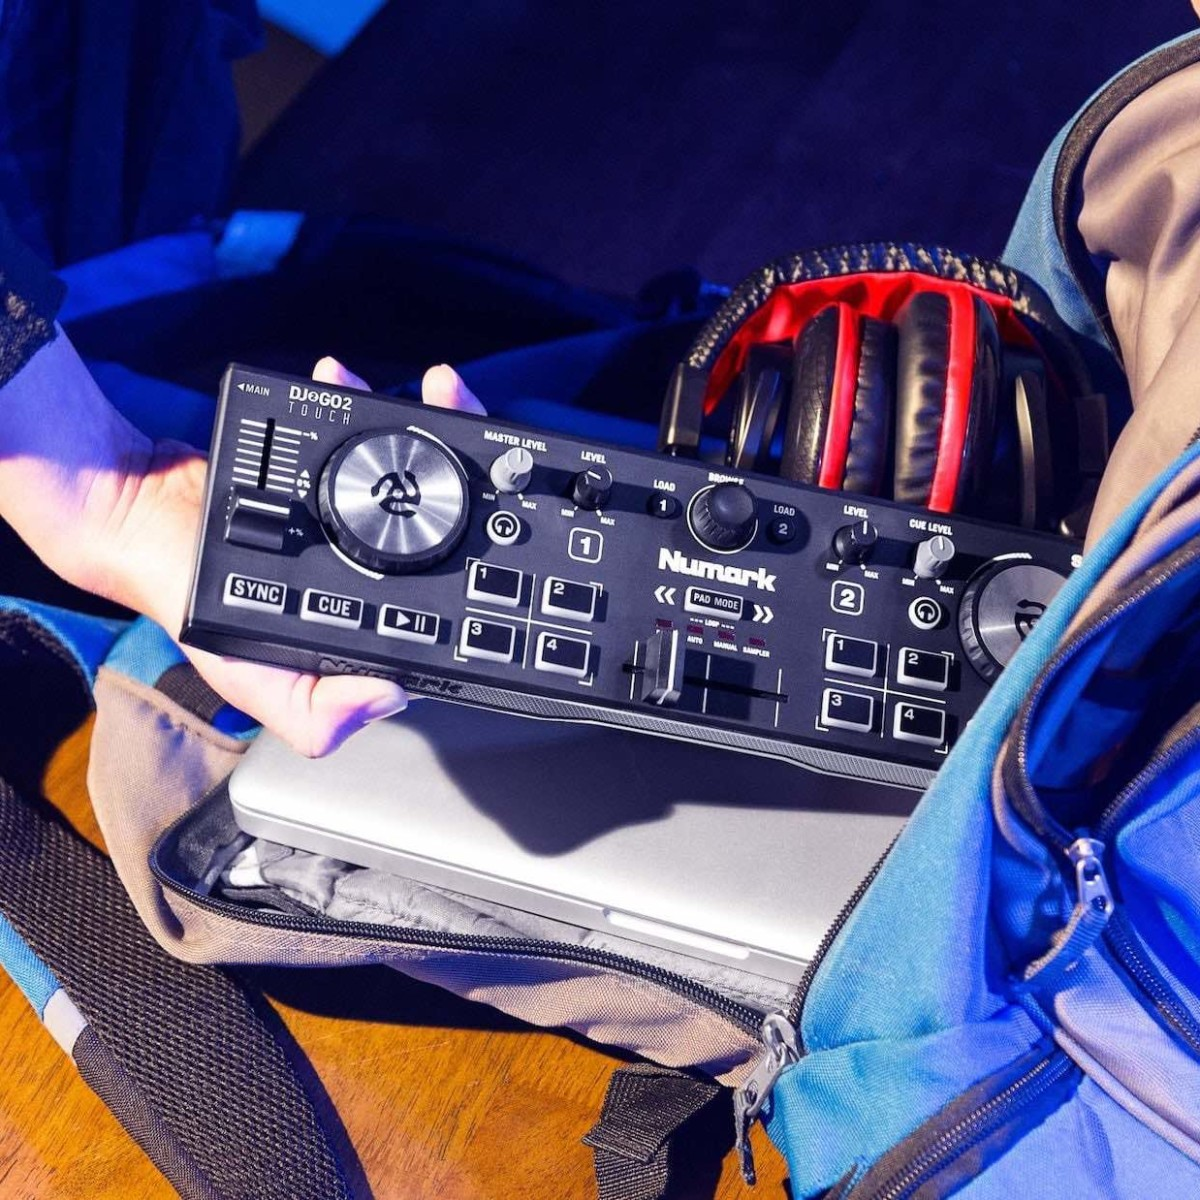 Numark DJ2GO2 Touch Pocket DJ Controller lets even amateurs get in on scratching and looping